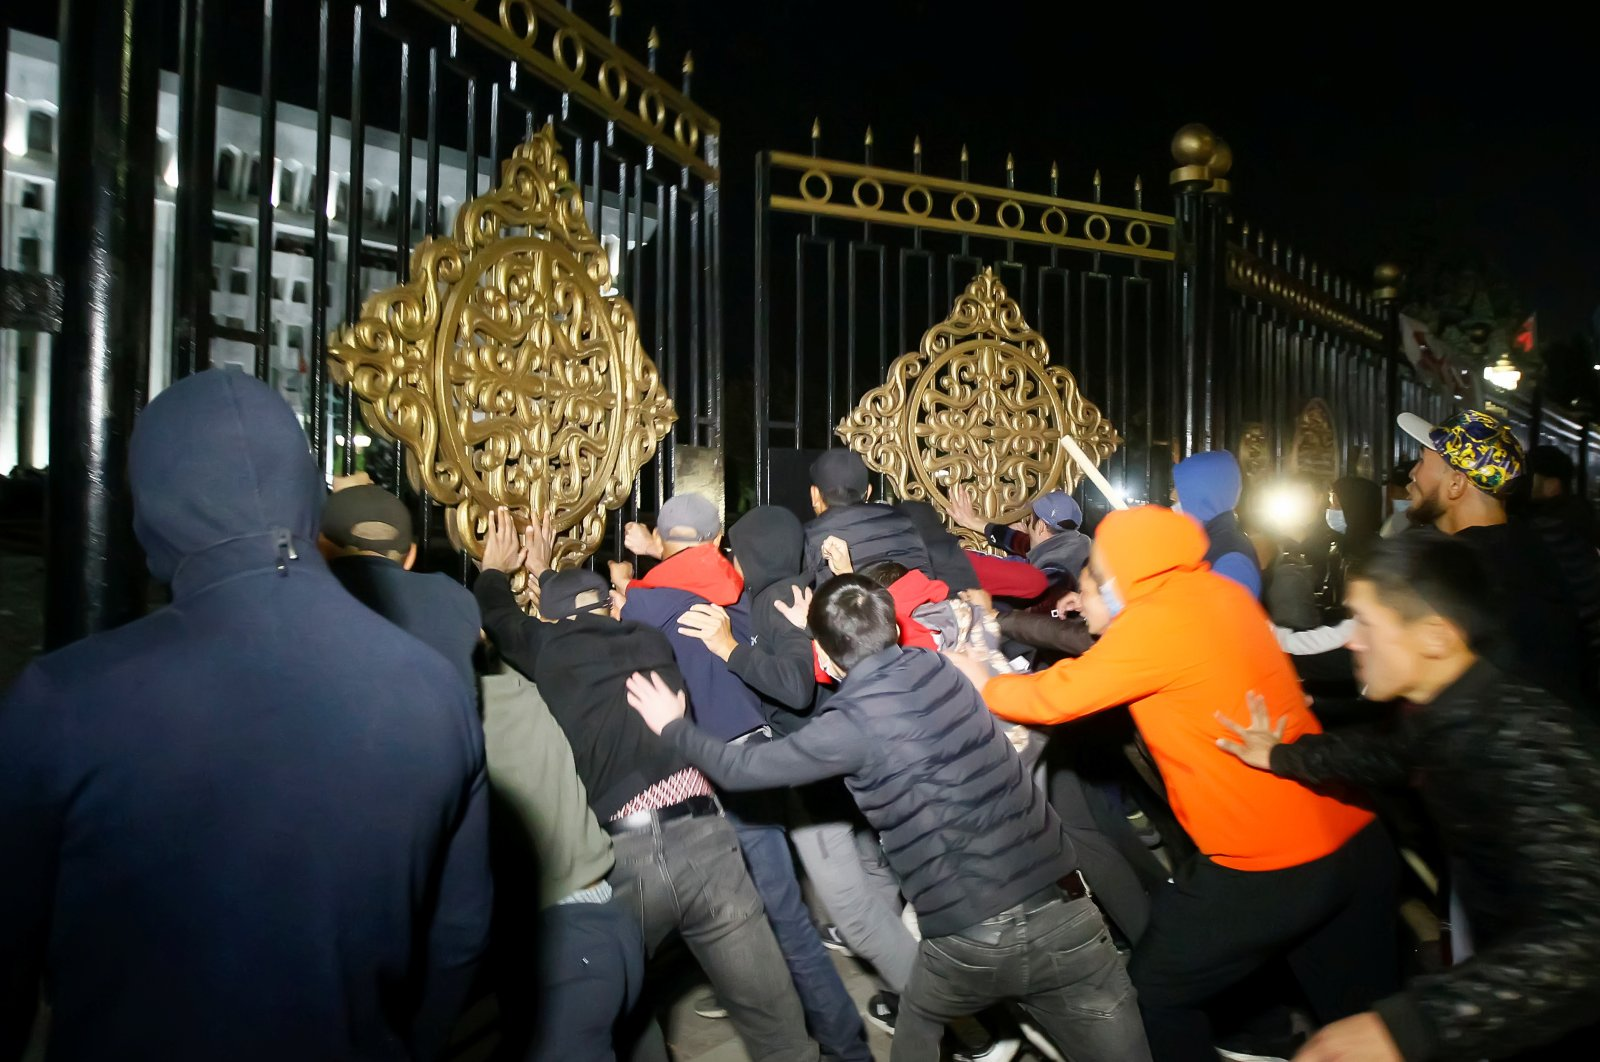 Protesters try to break into the government headquarters during a rally against the result of a parliamentary election in Bishkek, Kyrgyzstan, Oct. 5, 2020. (Reuters Photo)